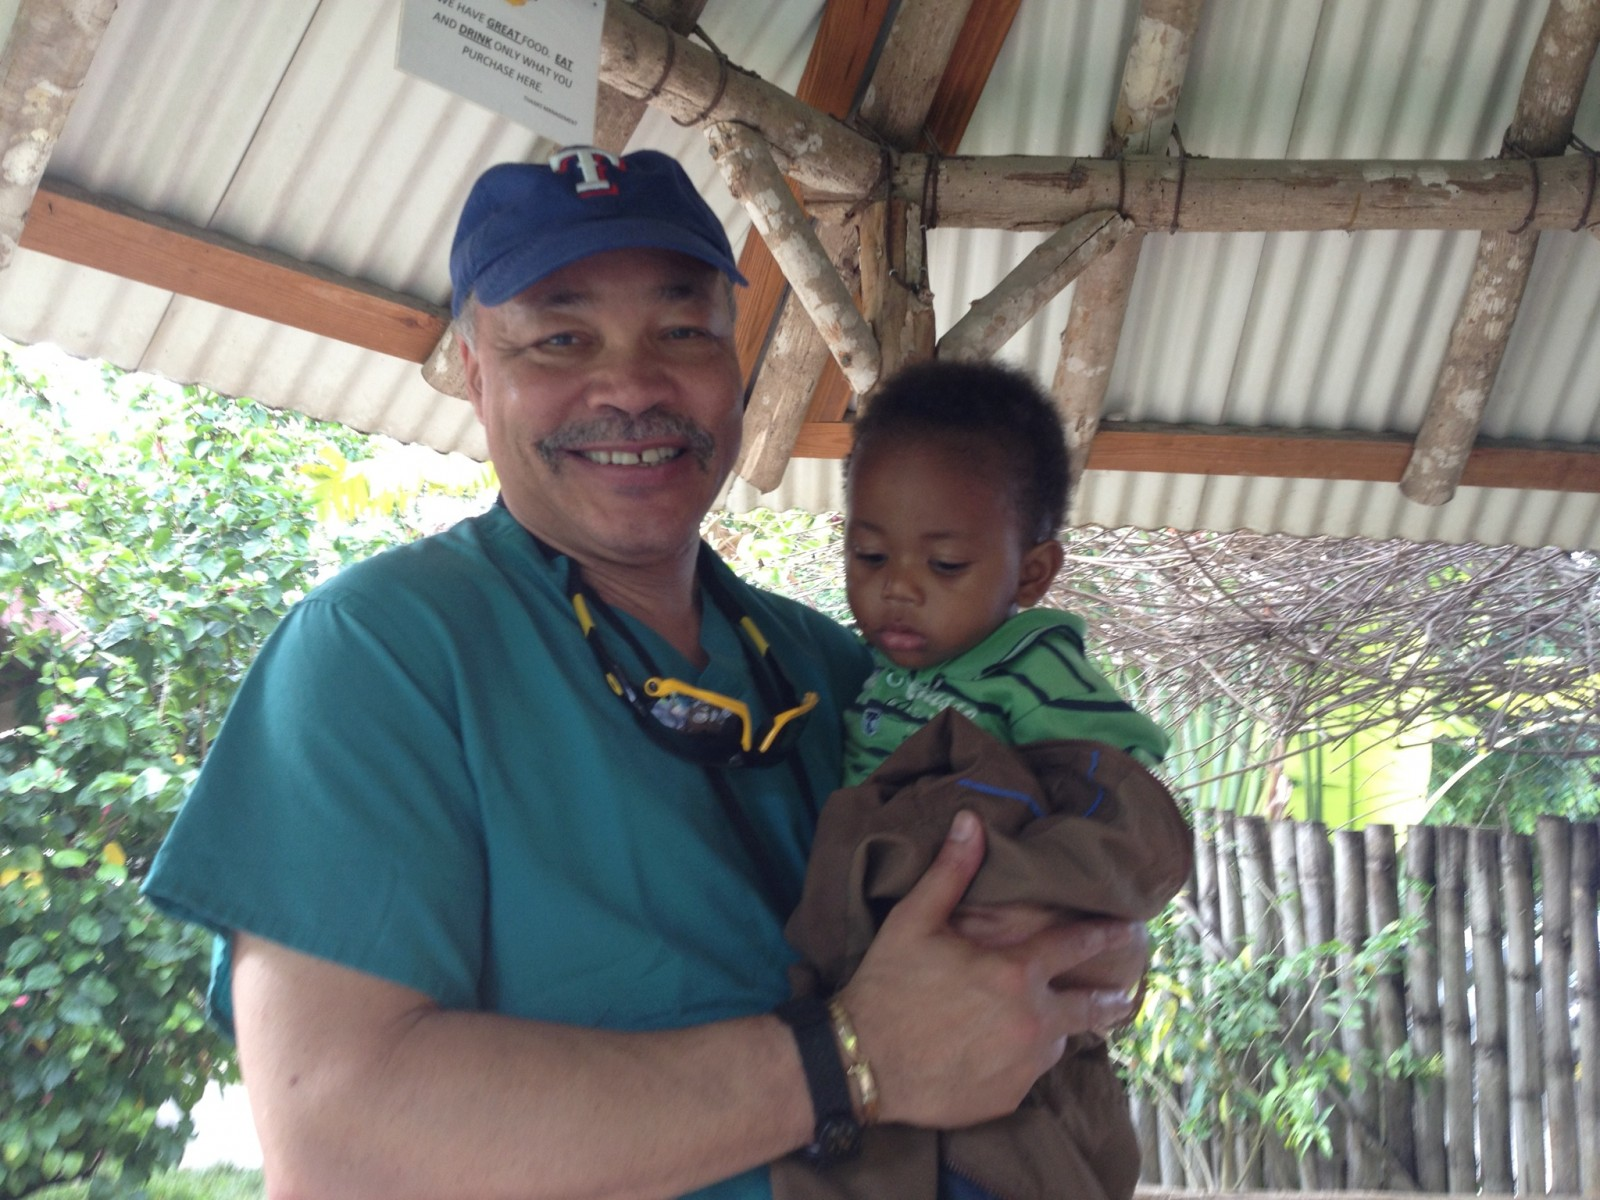 Dr. Stoute with a Patient in Jamaica